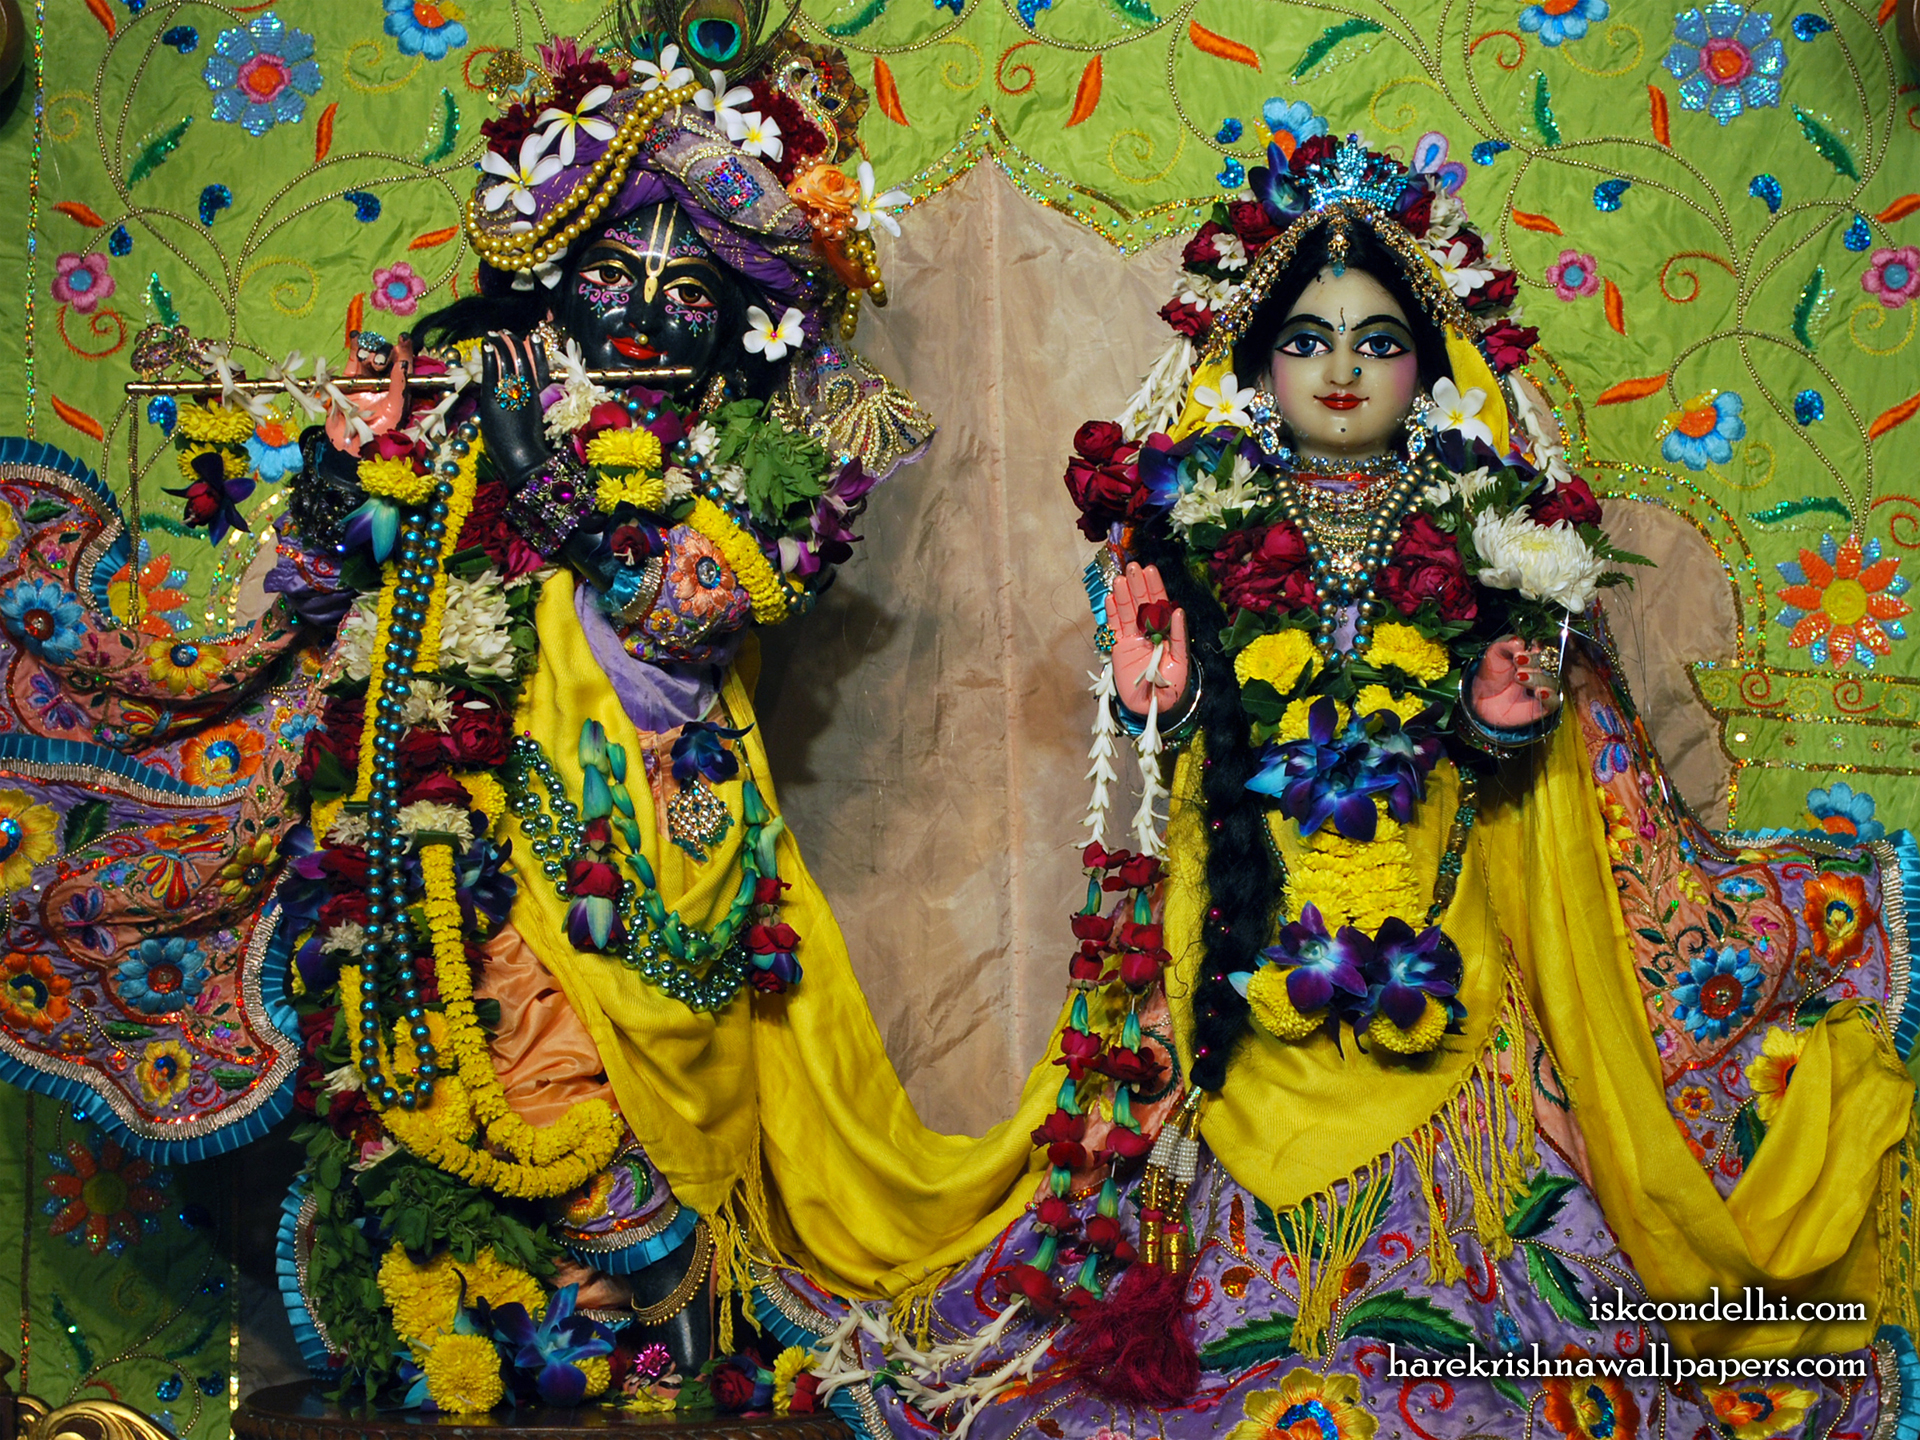 Sri Sri Radha Parthasarathi Wallpaper (008) Size 1920x1440 Download